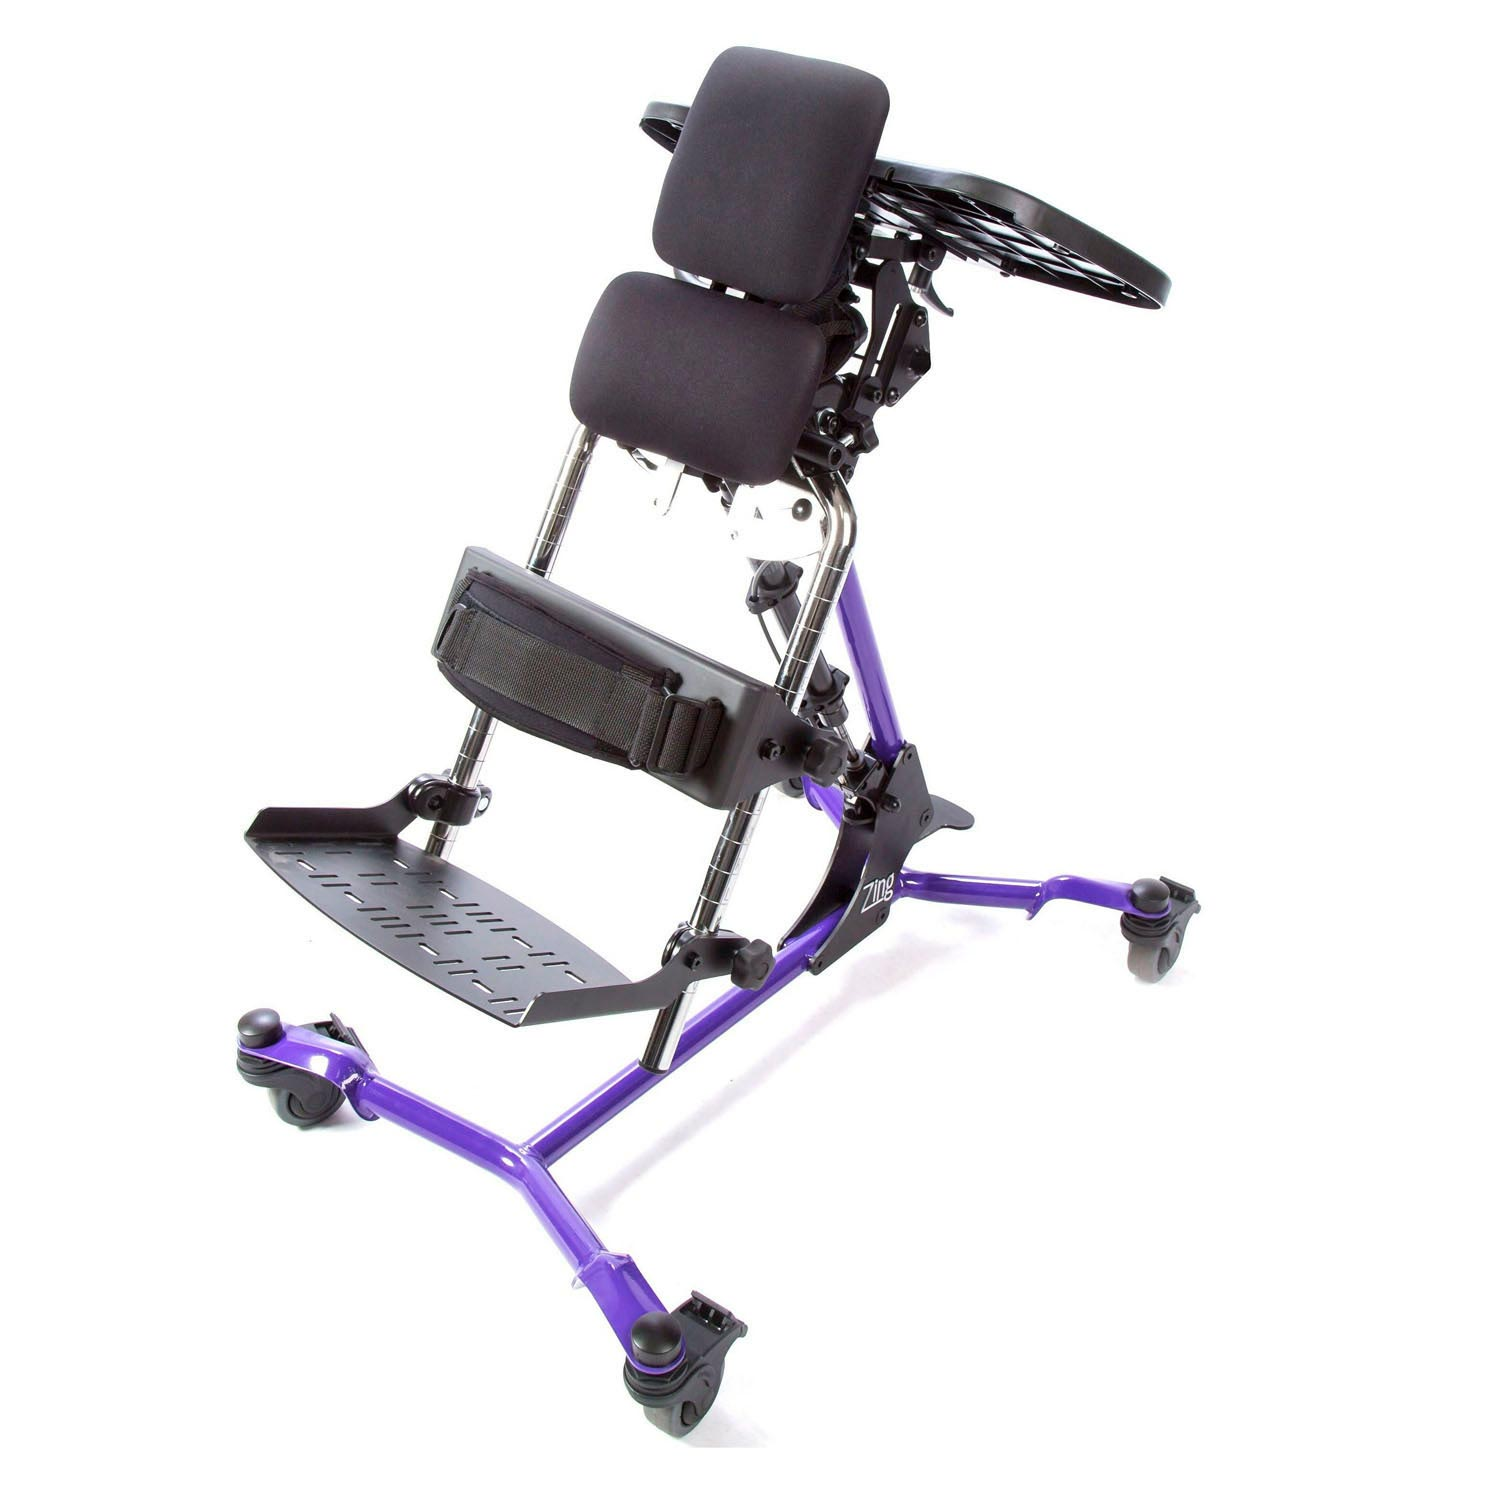 EasyStand zing prone stander